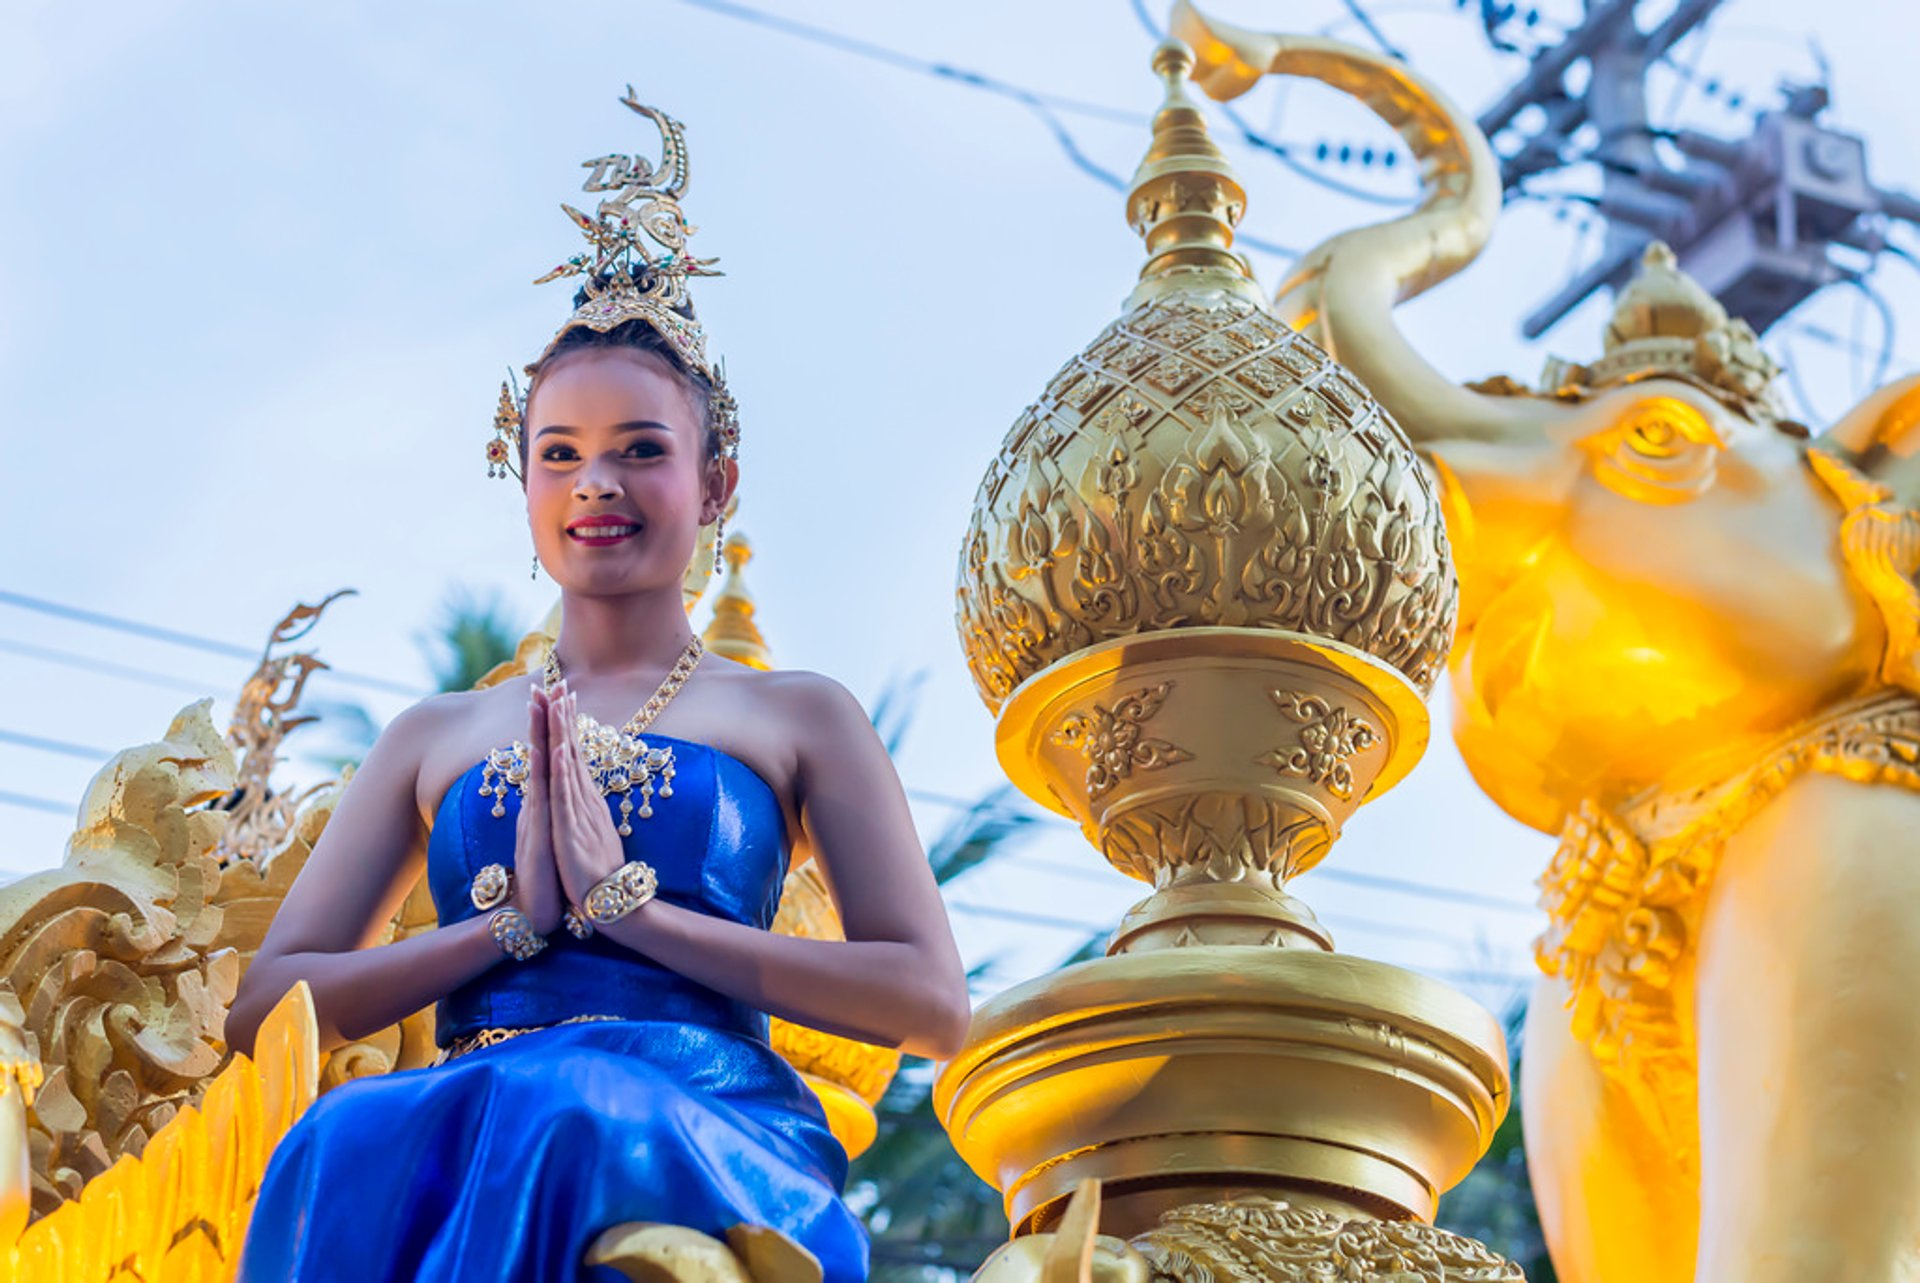 Best time to see Patong Carnival in Phuket